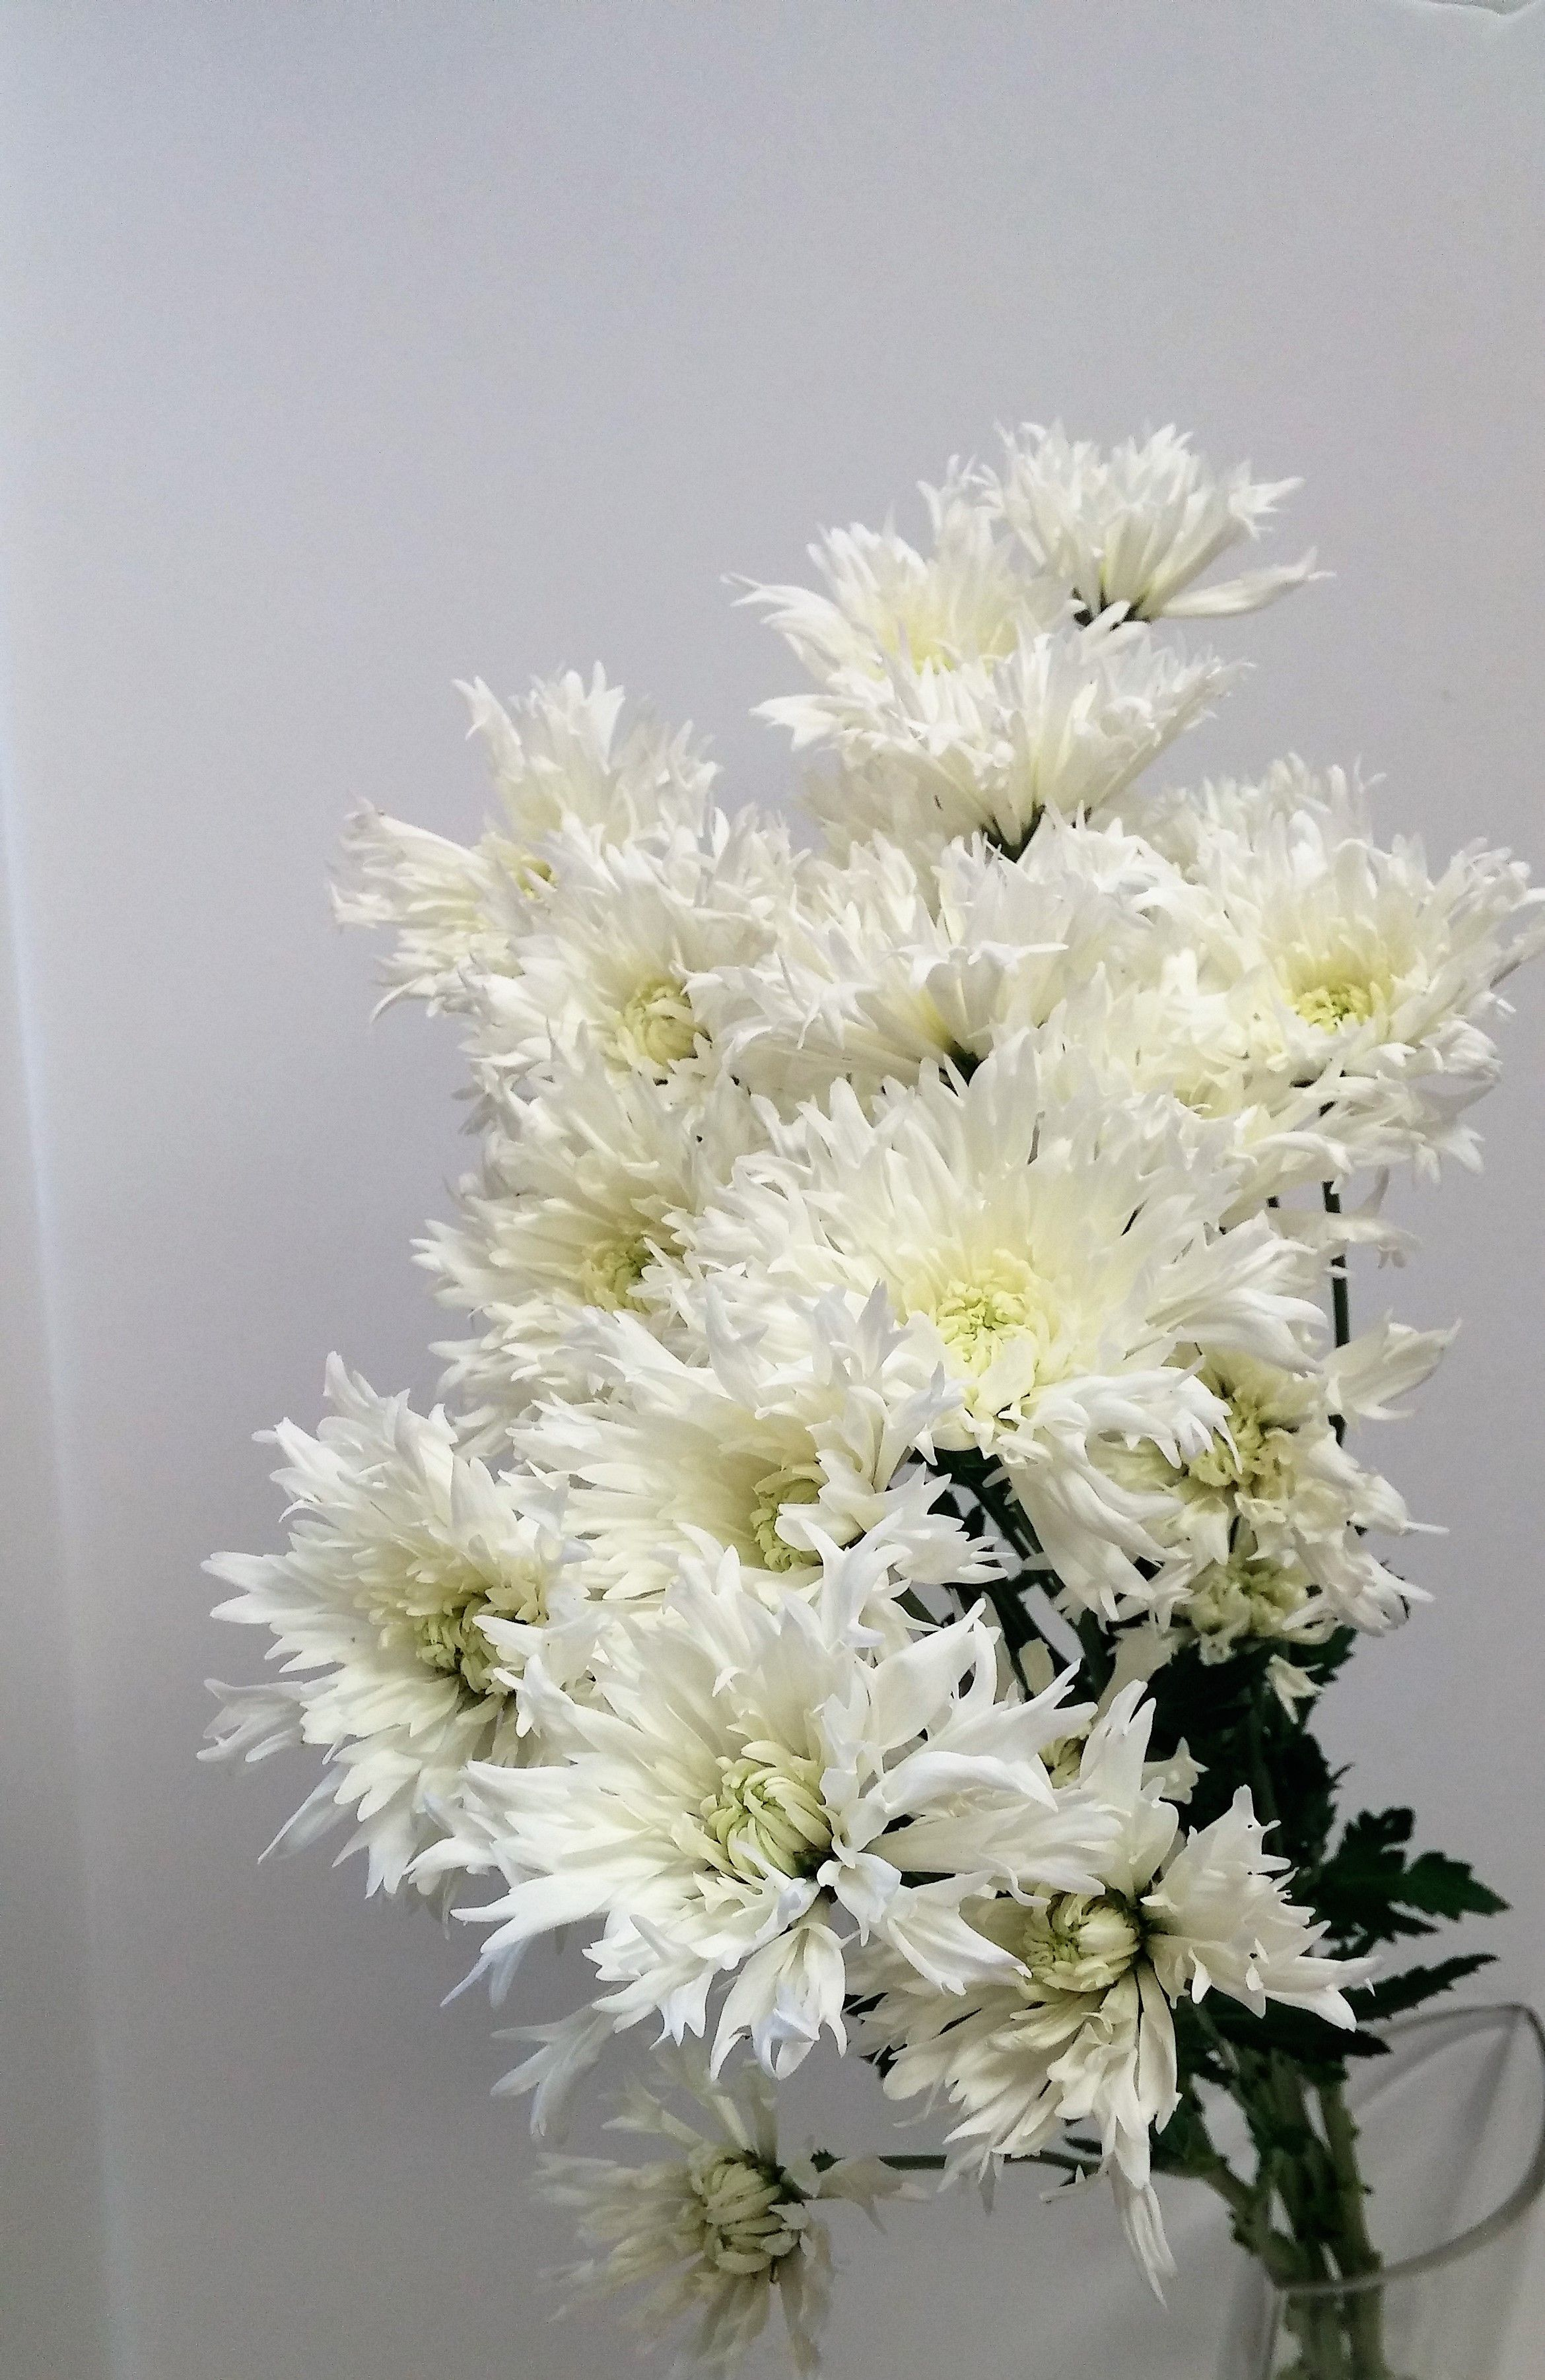 Snowflake White Daisy Winter Flowers Perfect For Winter